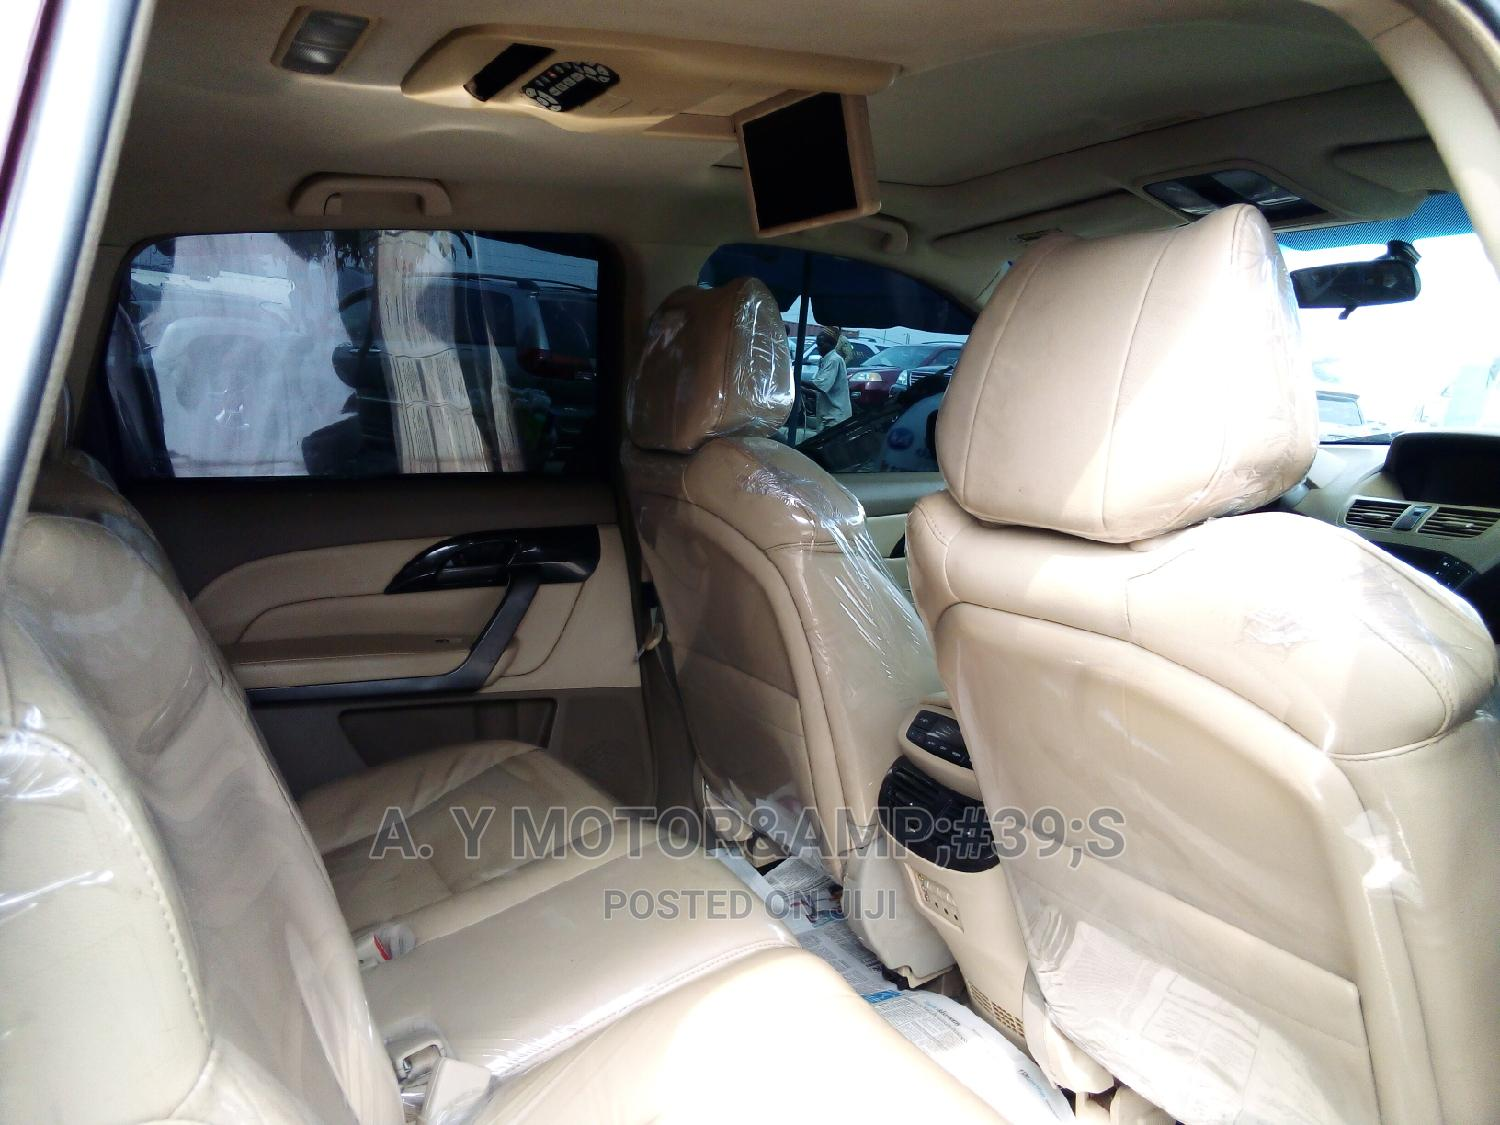 Acura MDX 2008 SUV 4dr AWD (3.7 6cyl 5A) Red   Cars for sale in Apapa, Lagos State, Nigeria